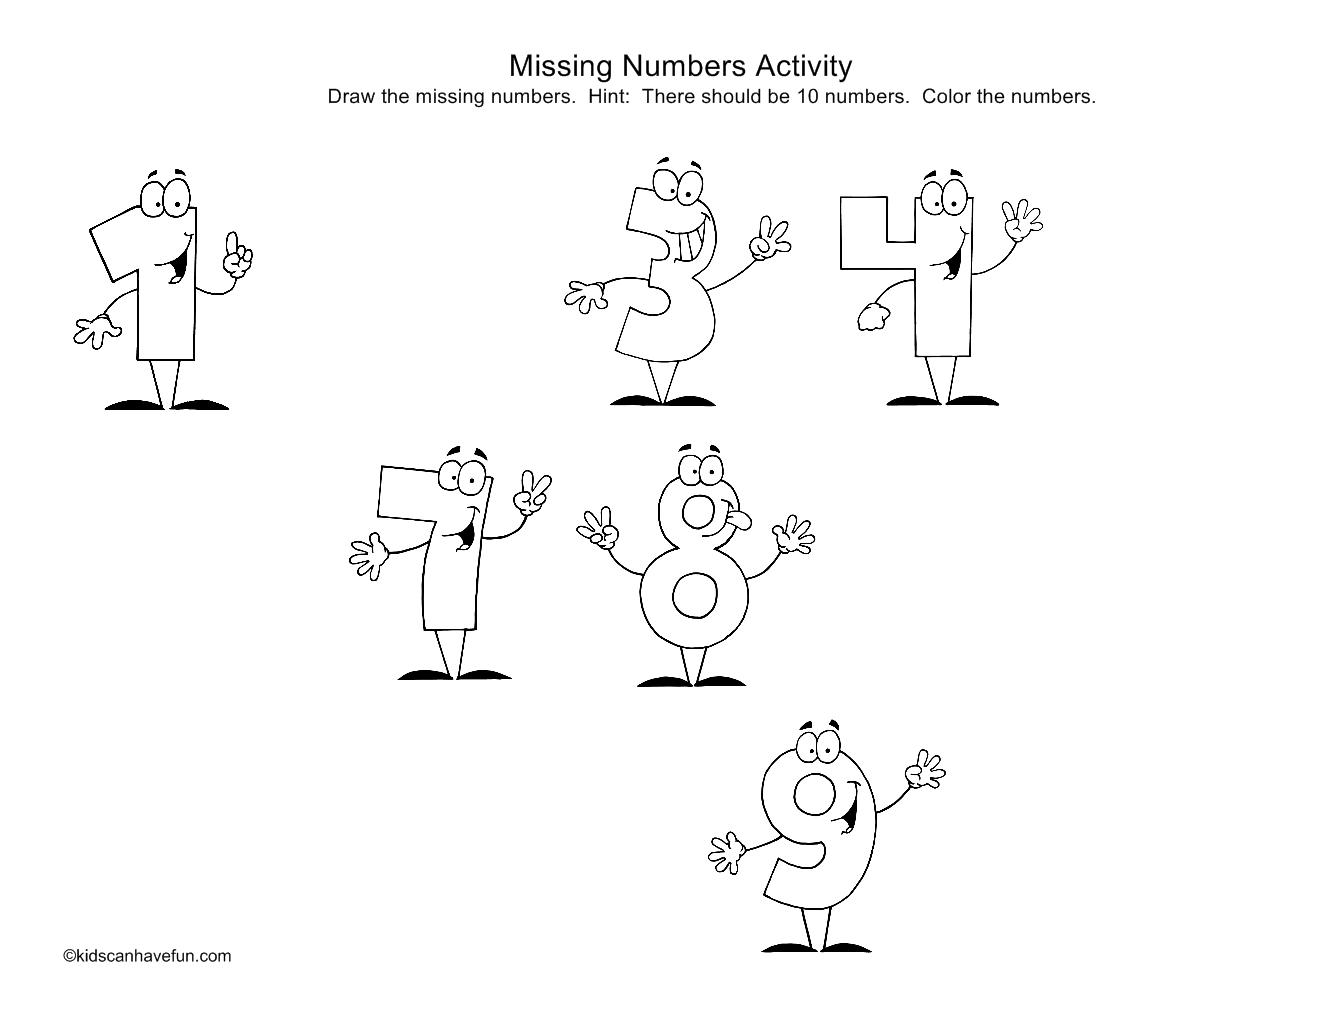 Printable Drawing Activities at GetDrawings.com | Free for personal ...